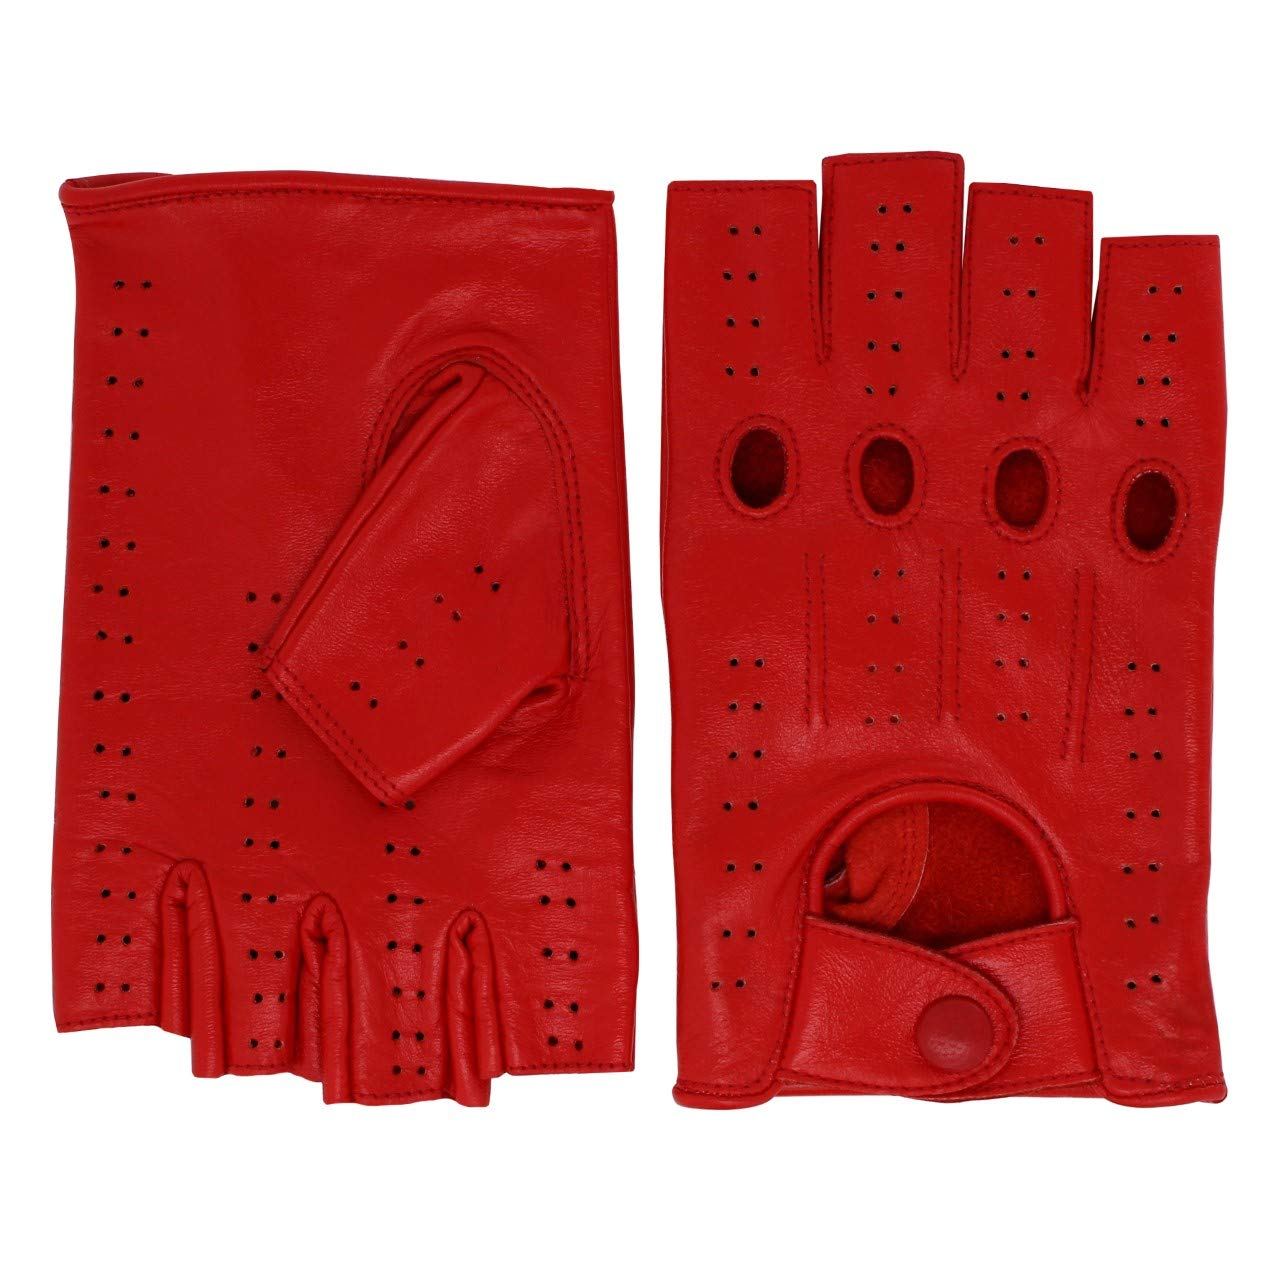 DRIVING GLOVES MEN GENUINE LEATHER HALF FINGER FINGERLESS TEXTING TOUCH SCREEN RED, SMALL